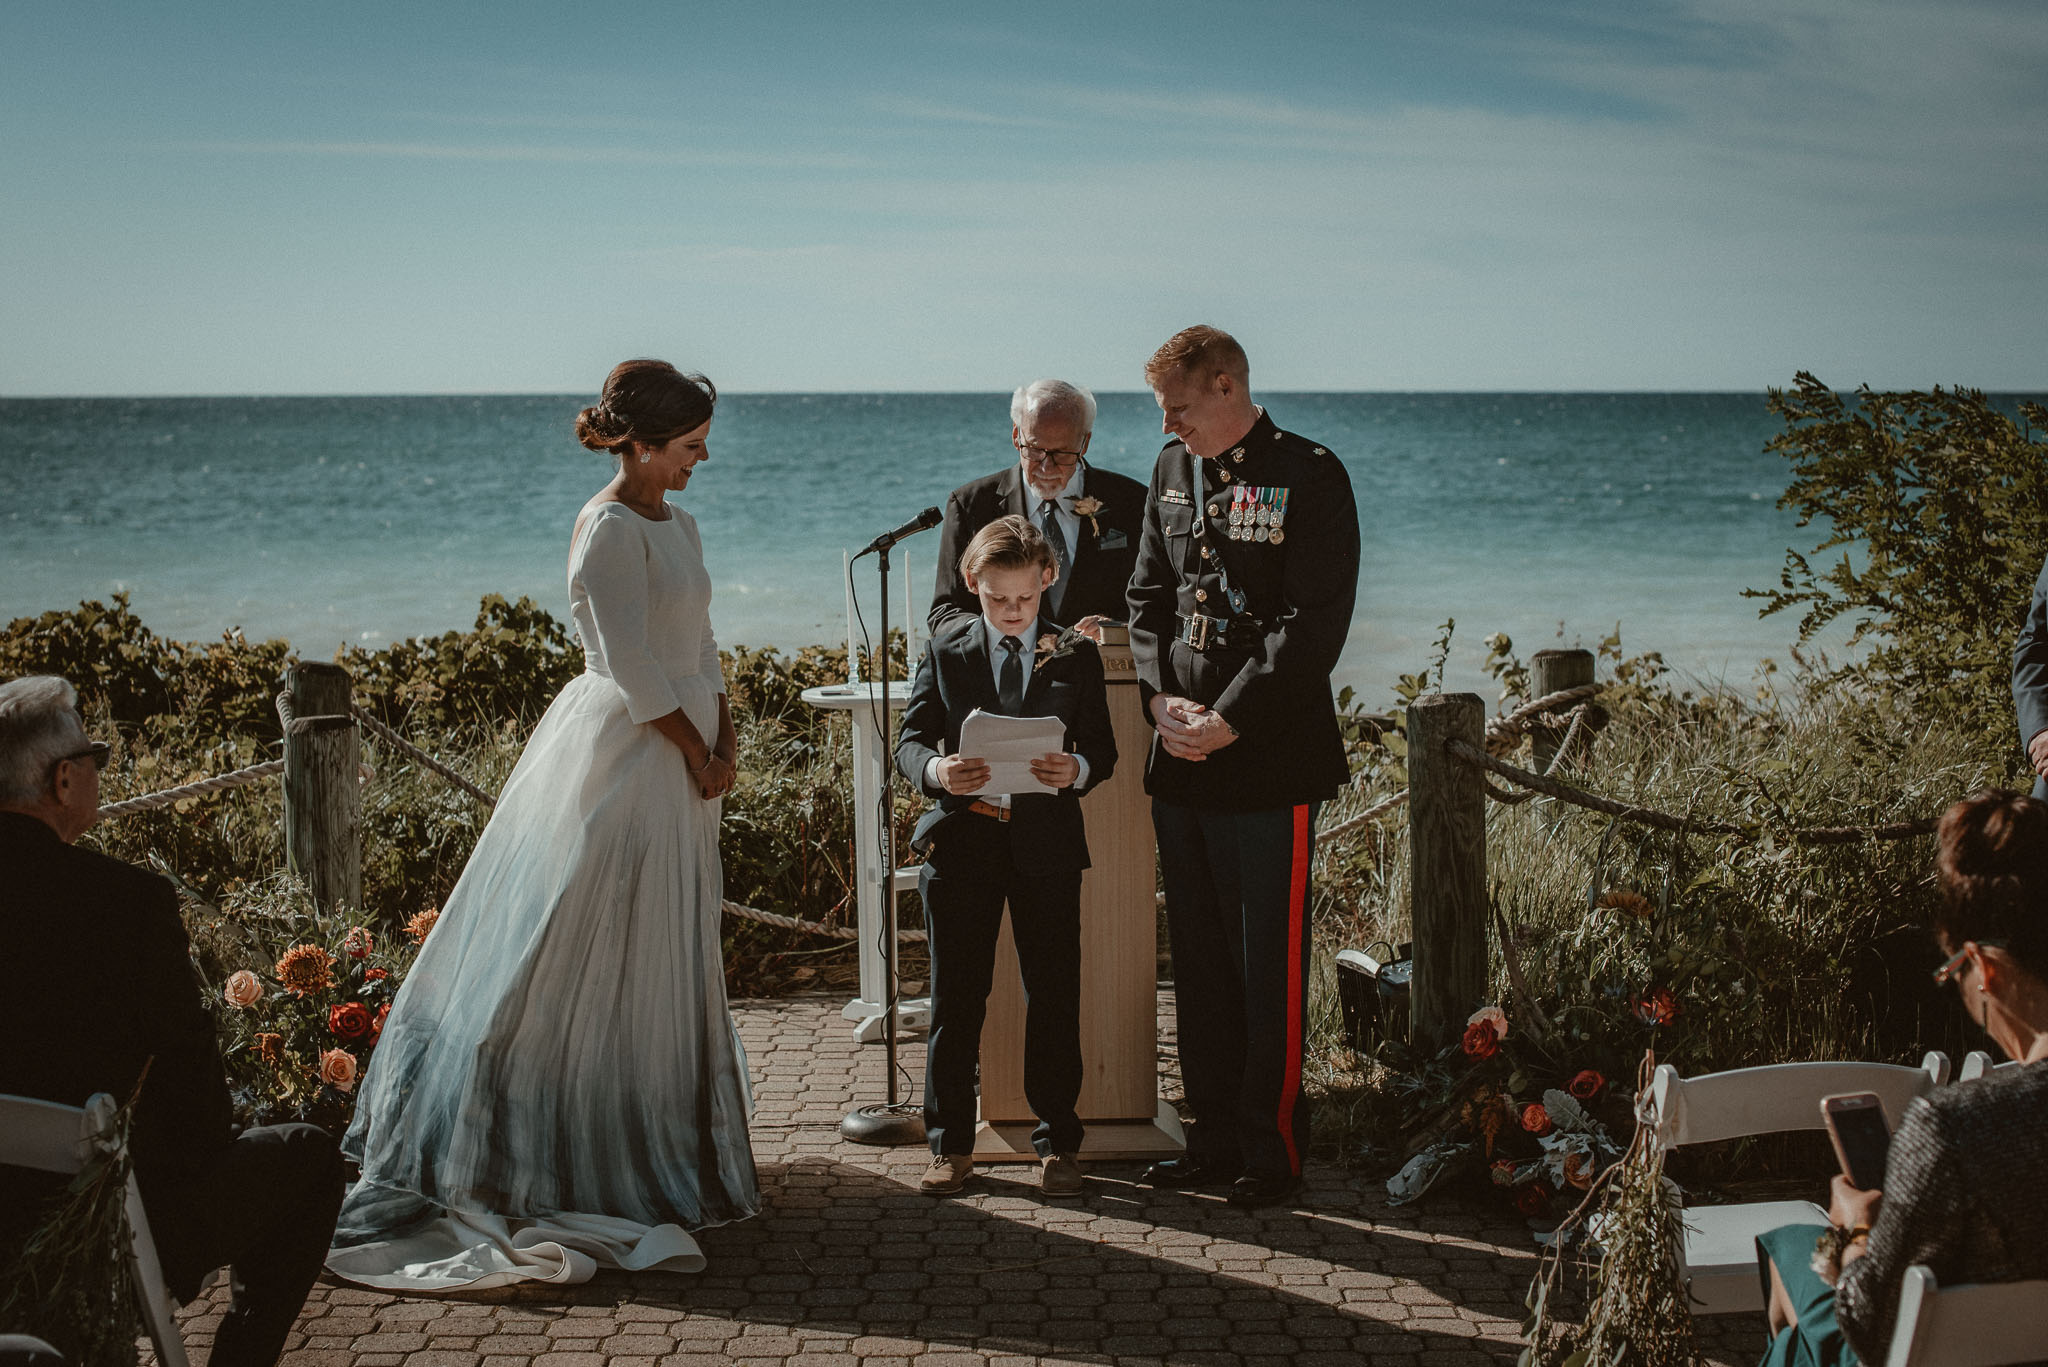 The groom's son standing between the couple as he reads a special message to his dad and future step mom.